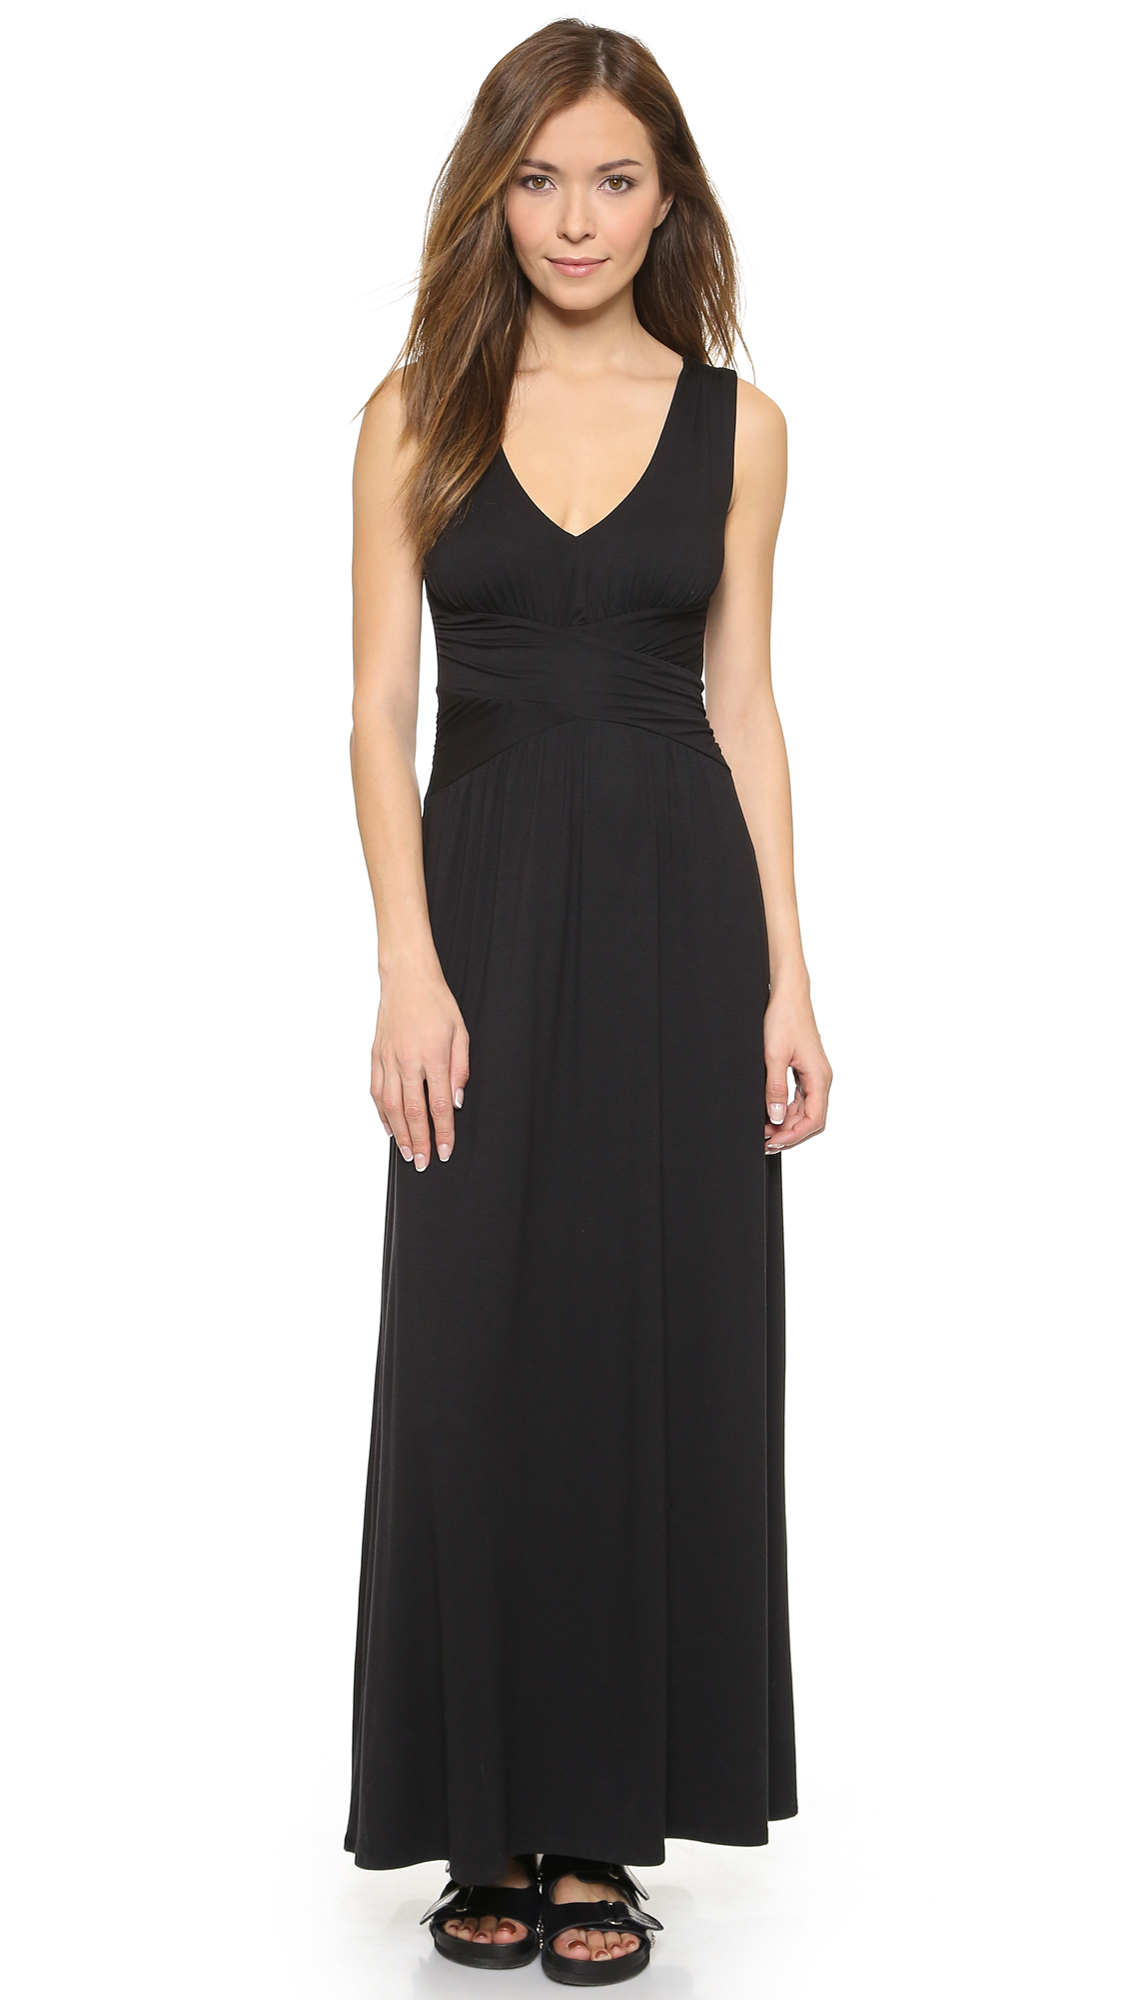 Black dress maxi - Three Dots V Neck Maxi Dress 15 Off First App Purchase With Code 15foryou